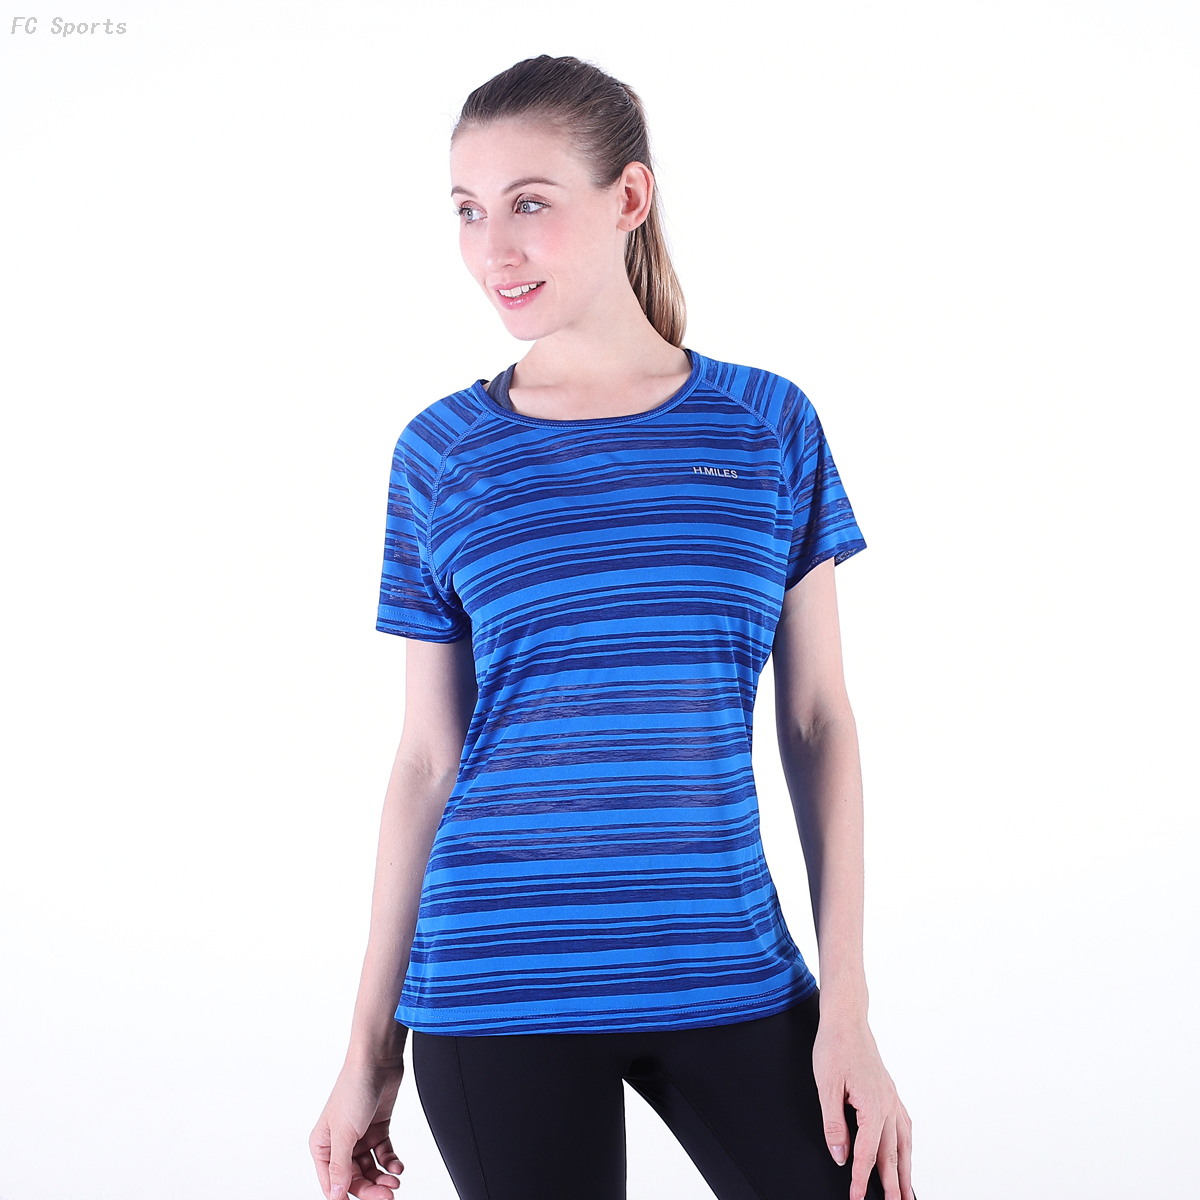 FC Sports Tee shirt Overall Women Slim Breathable Dry Fit Style Fitness Clothes Wholesale